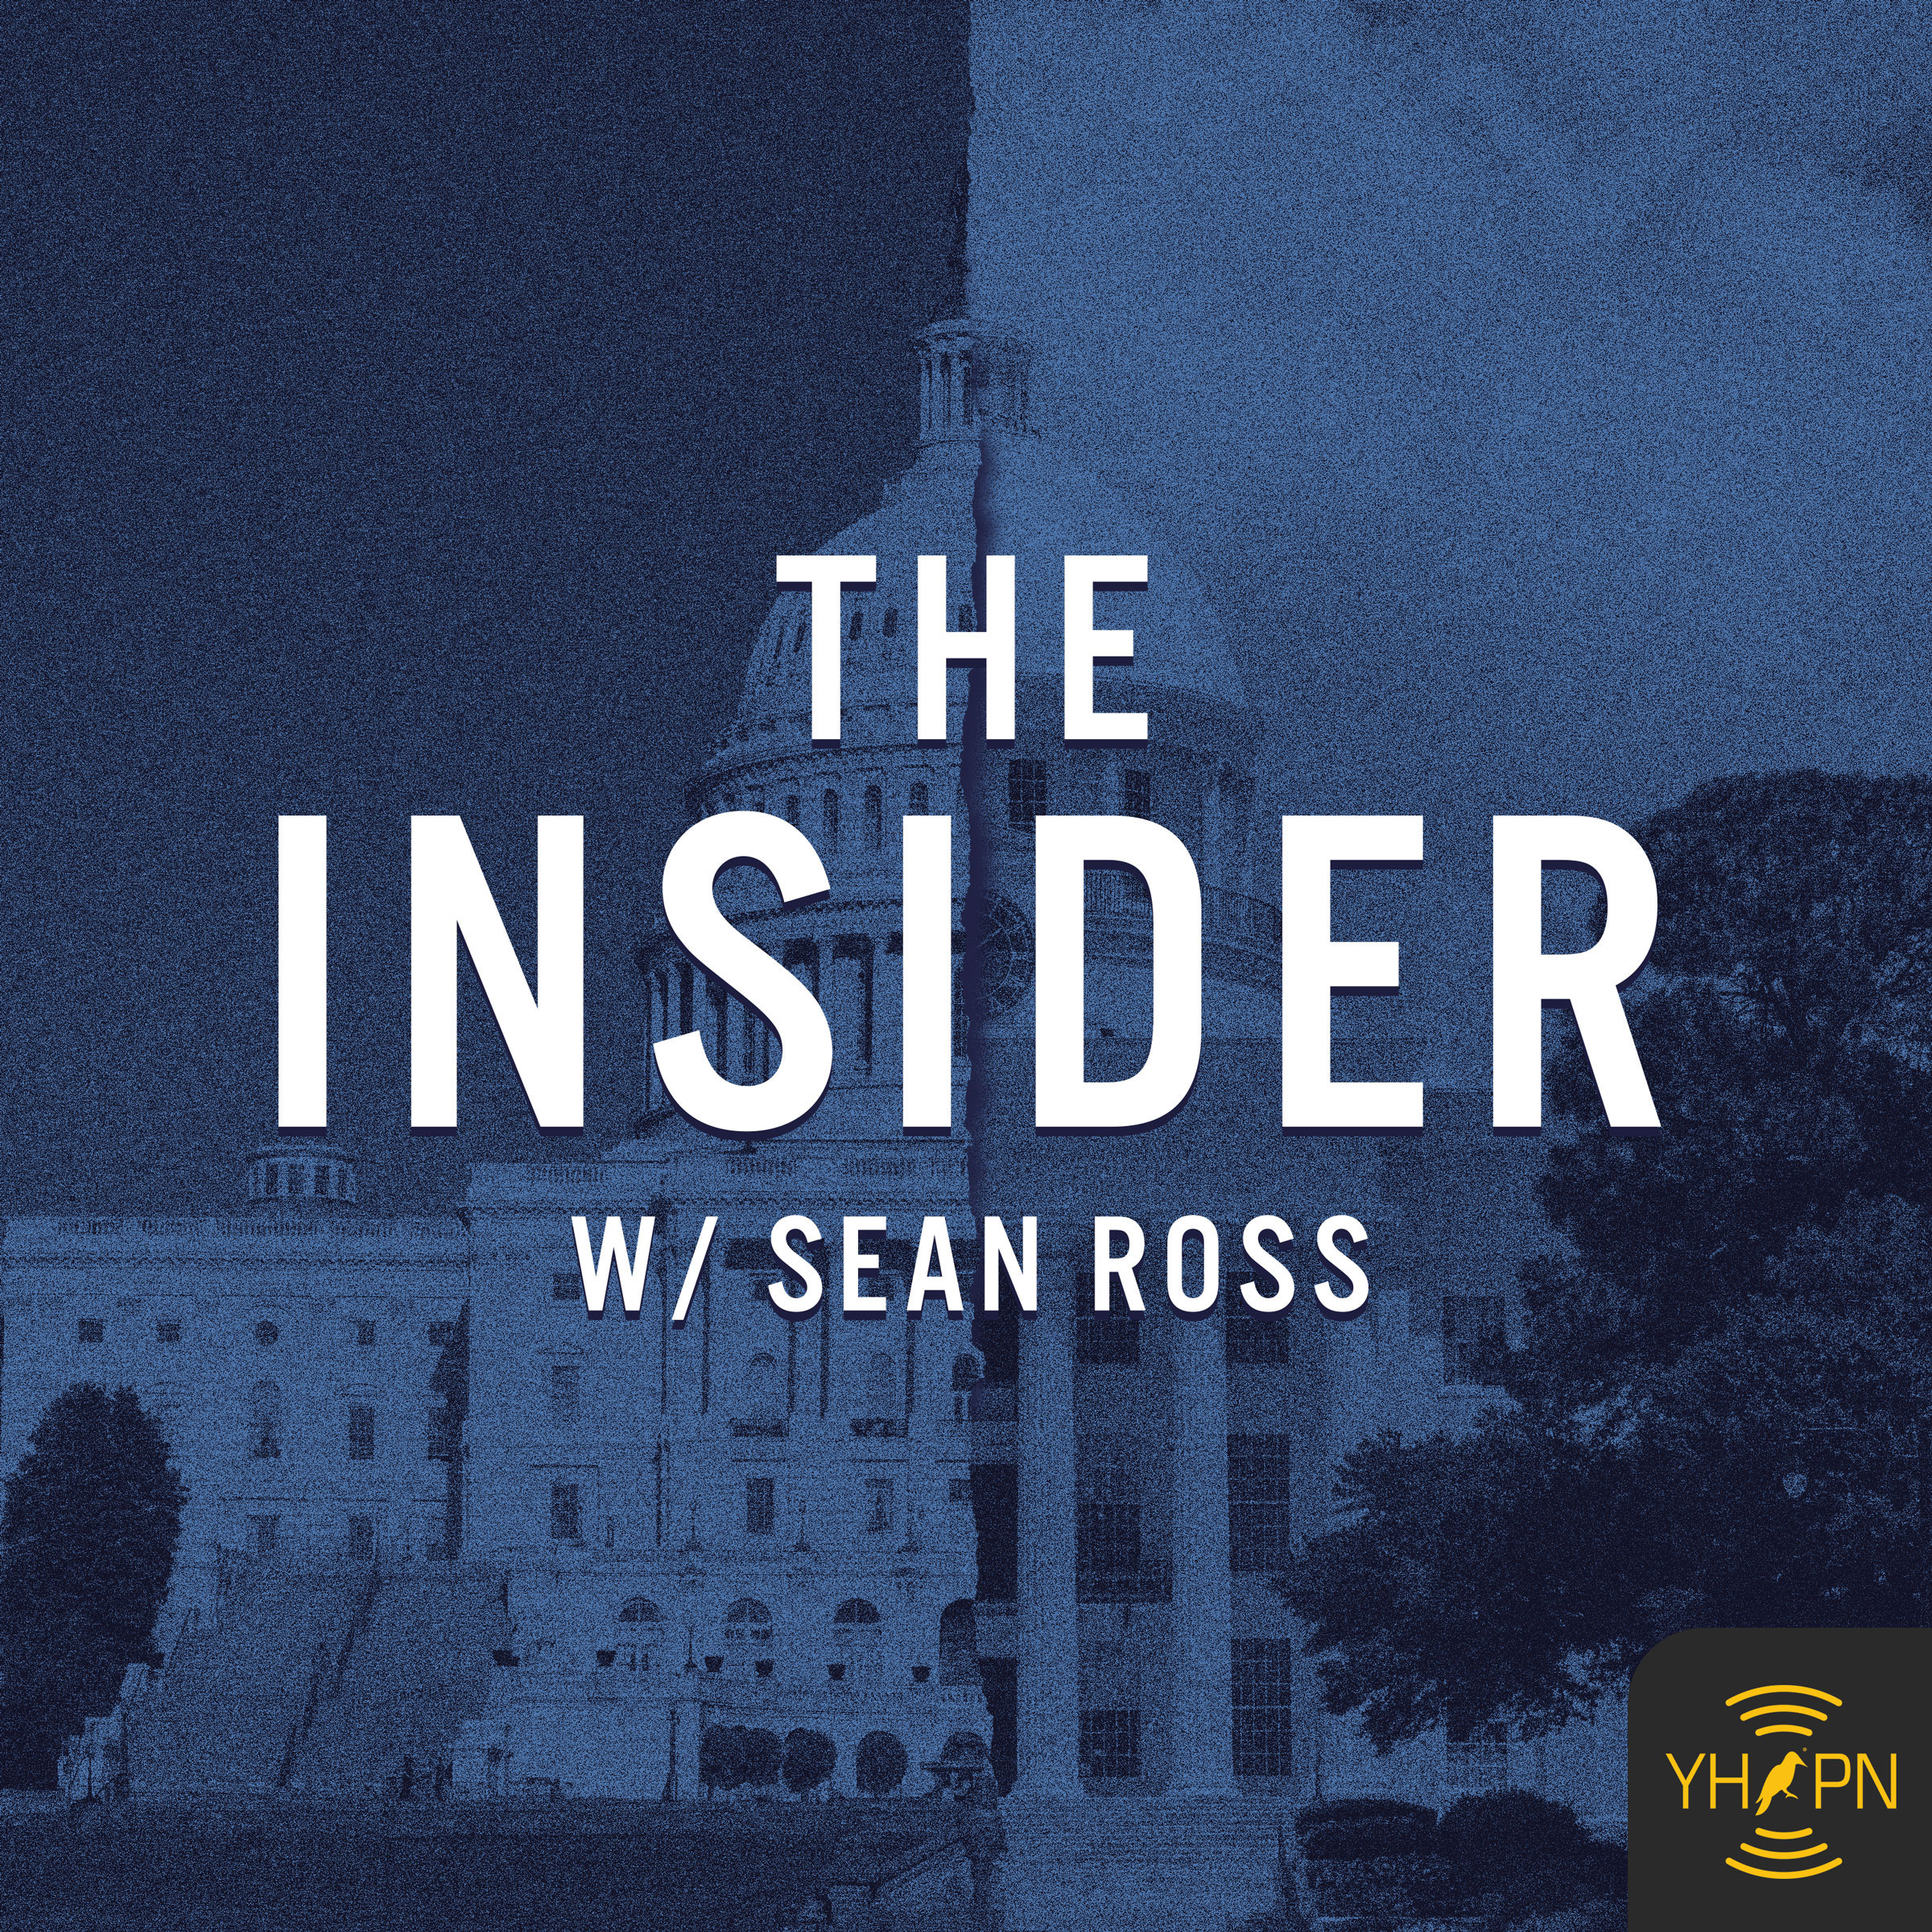 The Insider with Sean Ross